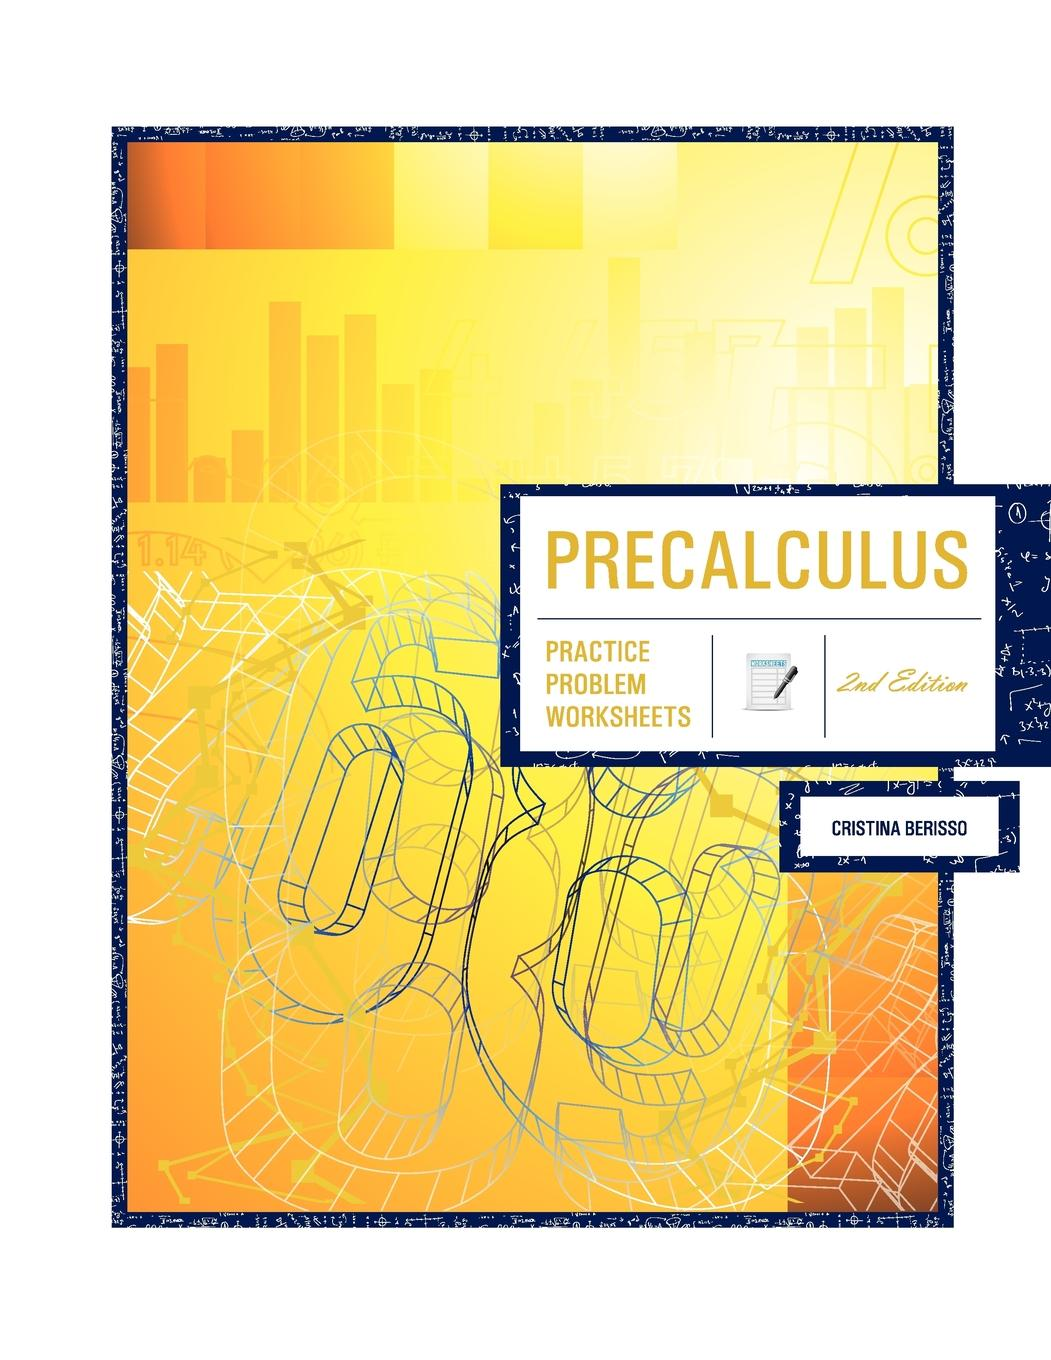 Precalculus 2nd Edition Practice Problem Worksheets